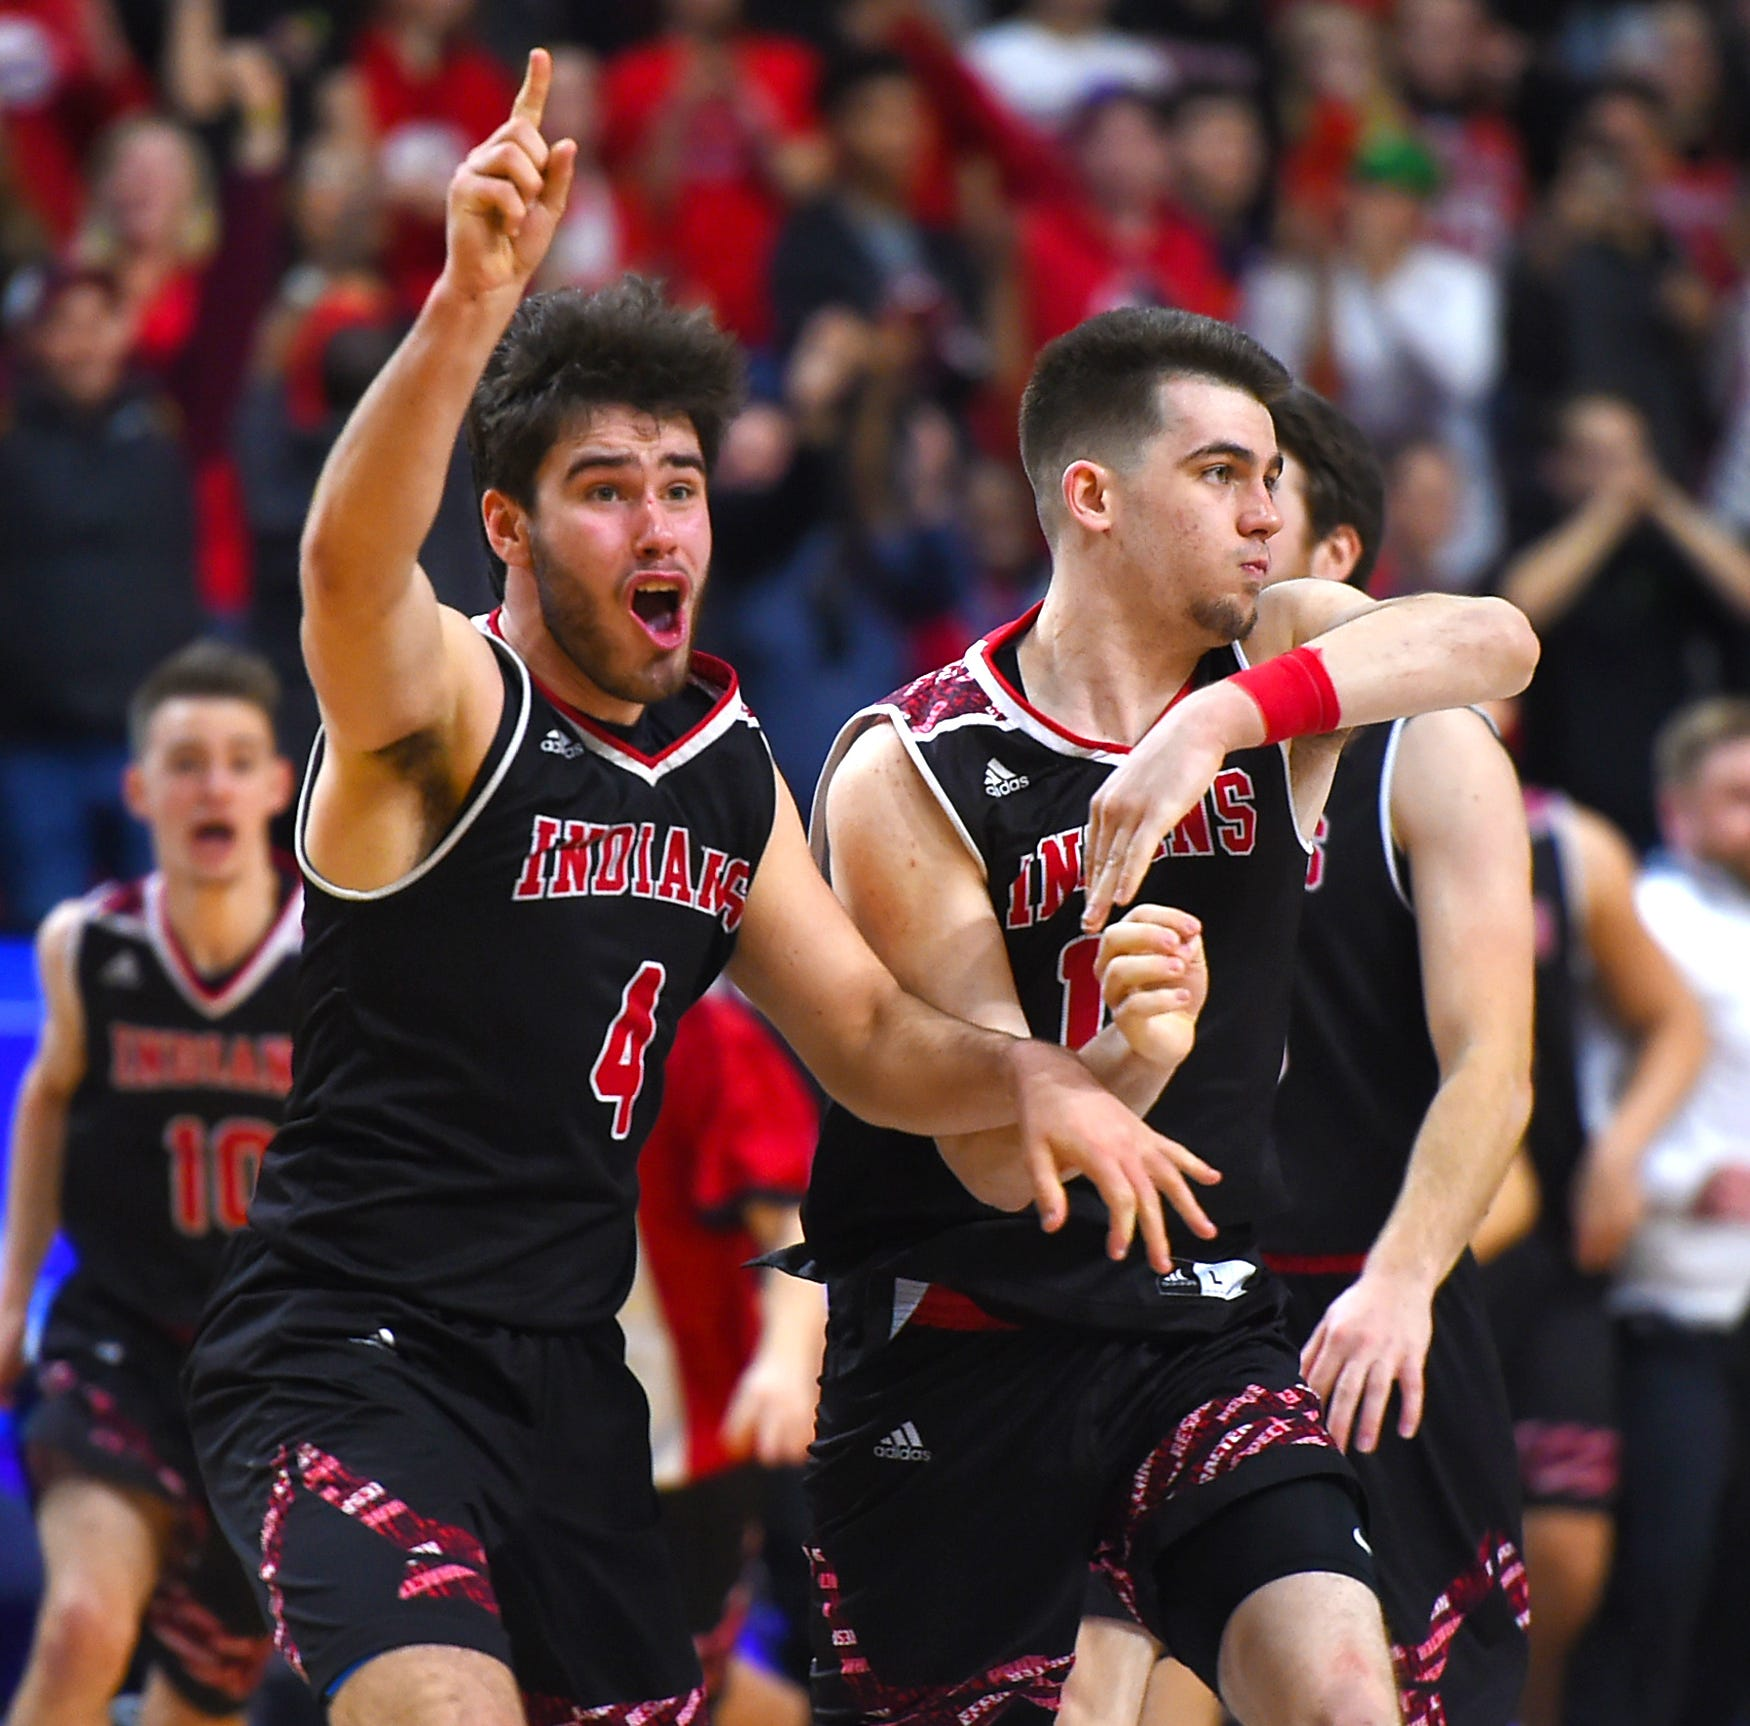 Syracuse recruit Joe Girard makes buzzer-beater in OT to win state title for Glens Falls